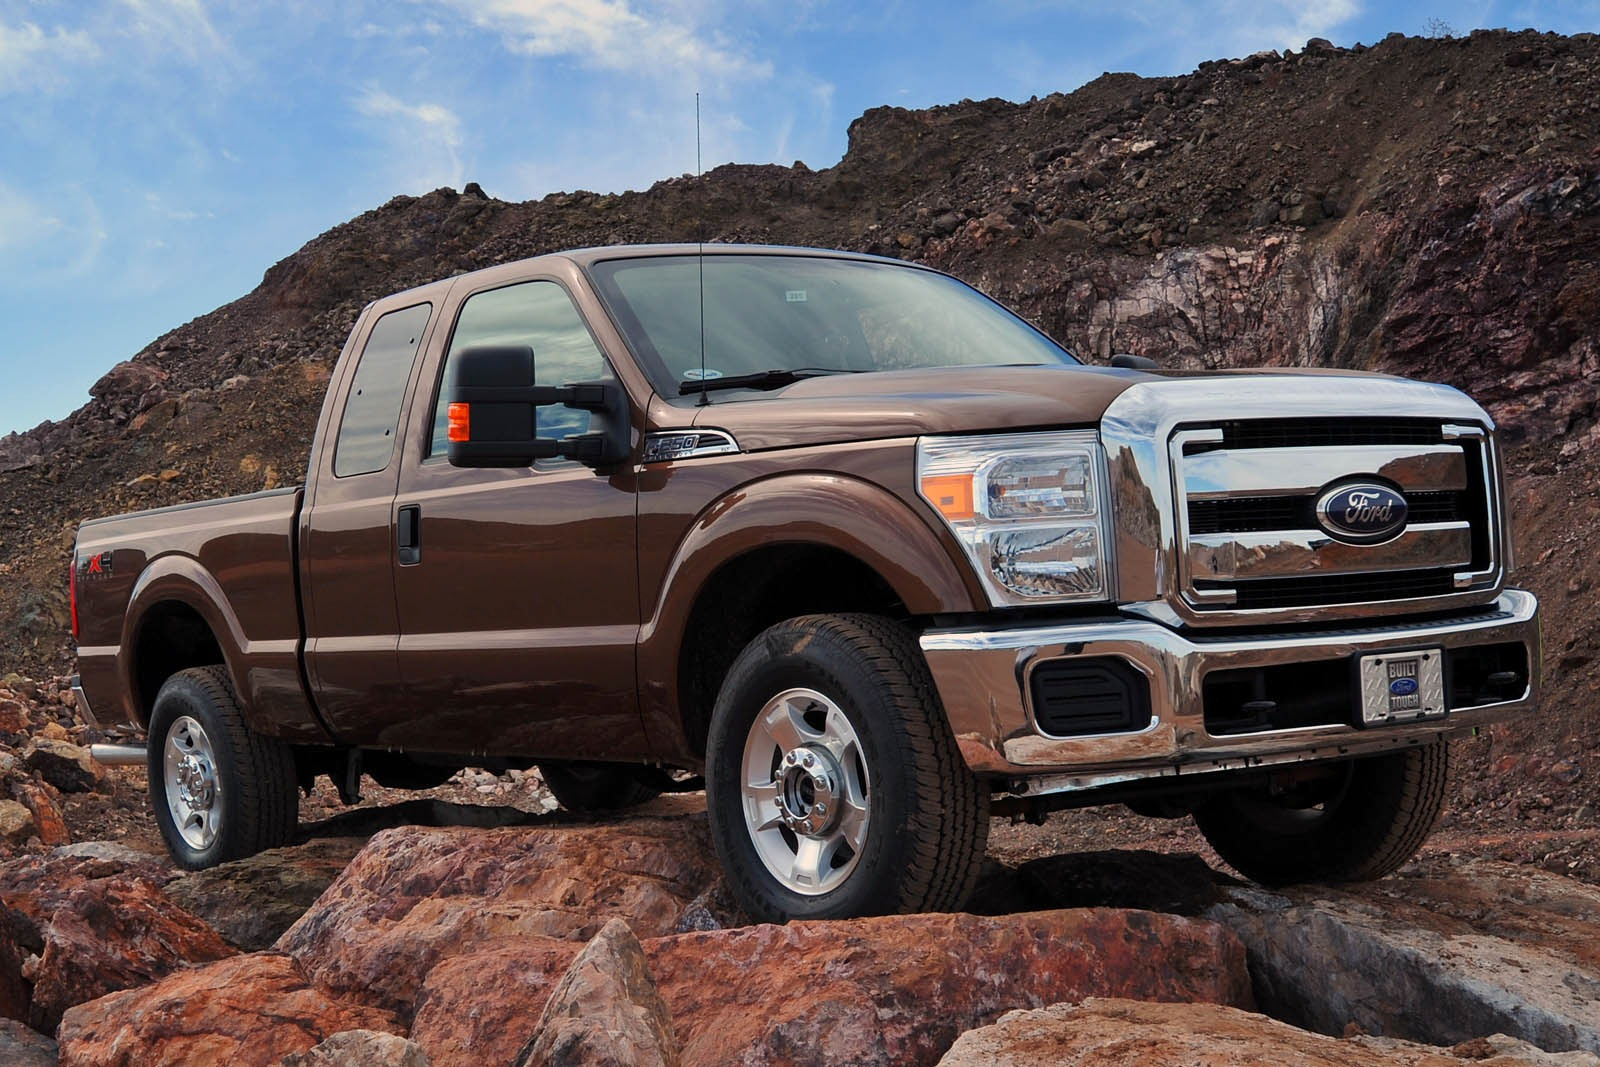 2012 Ford F-250 Super Dut exterior #2